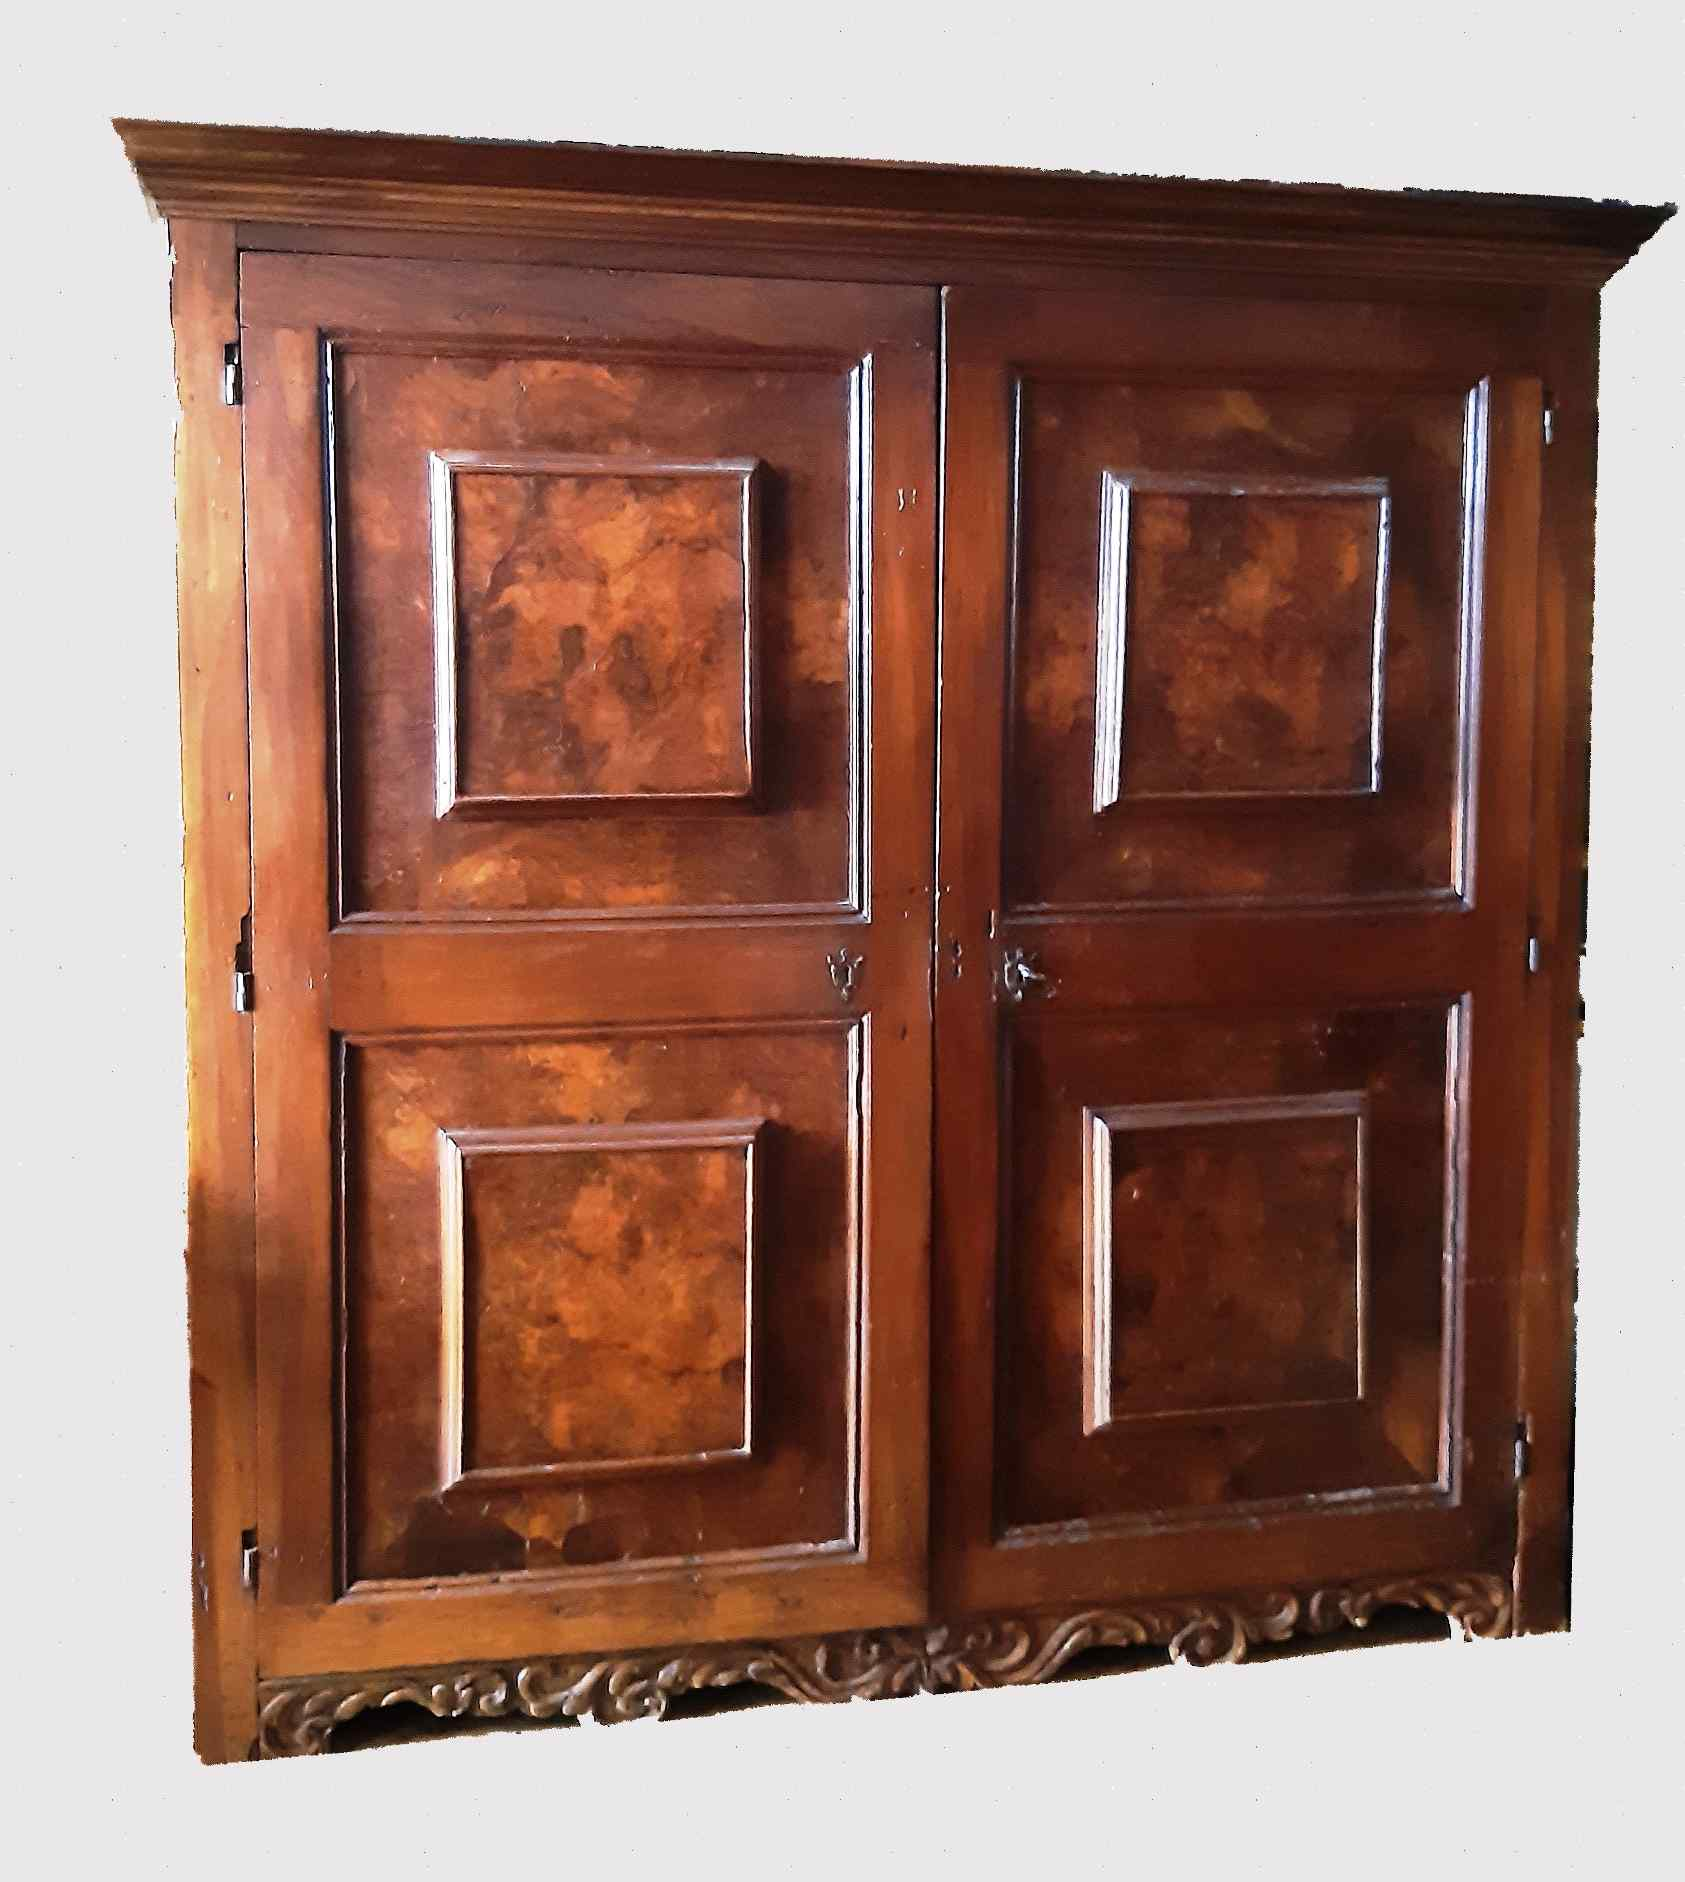 Antique Renaissance furniture in walnut and briar walnut